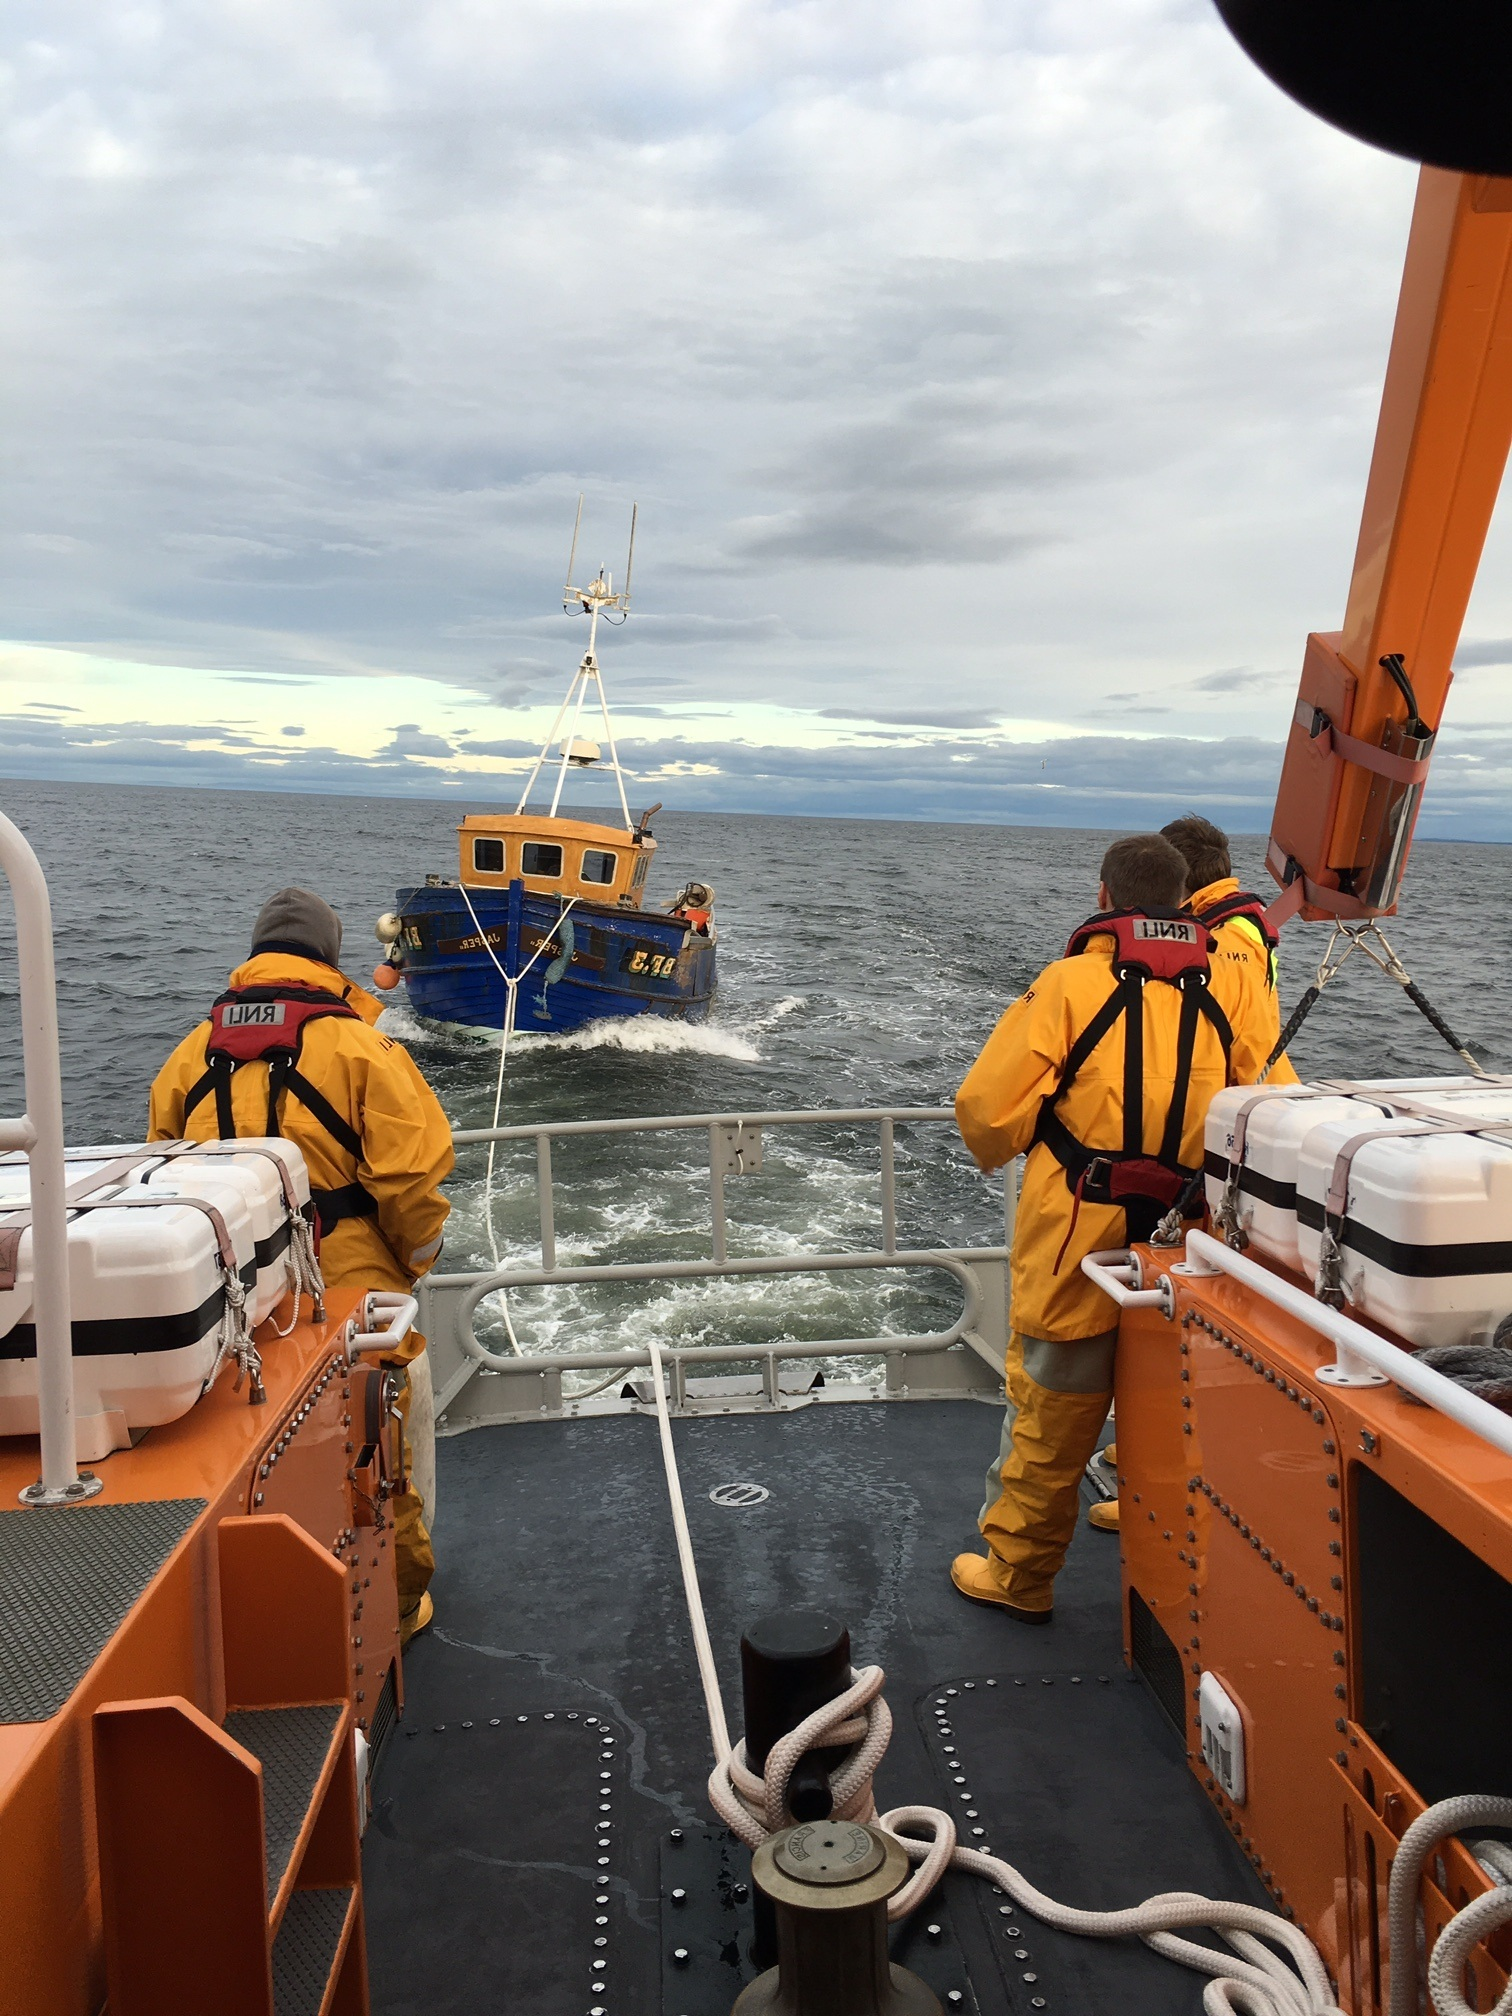 Buckie lifeboat towing The Jasper to shore, pic provided by the RNLI